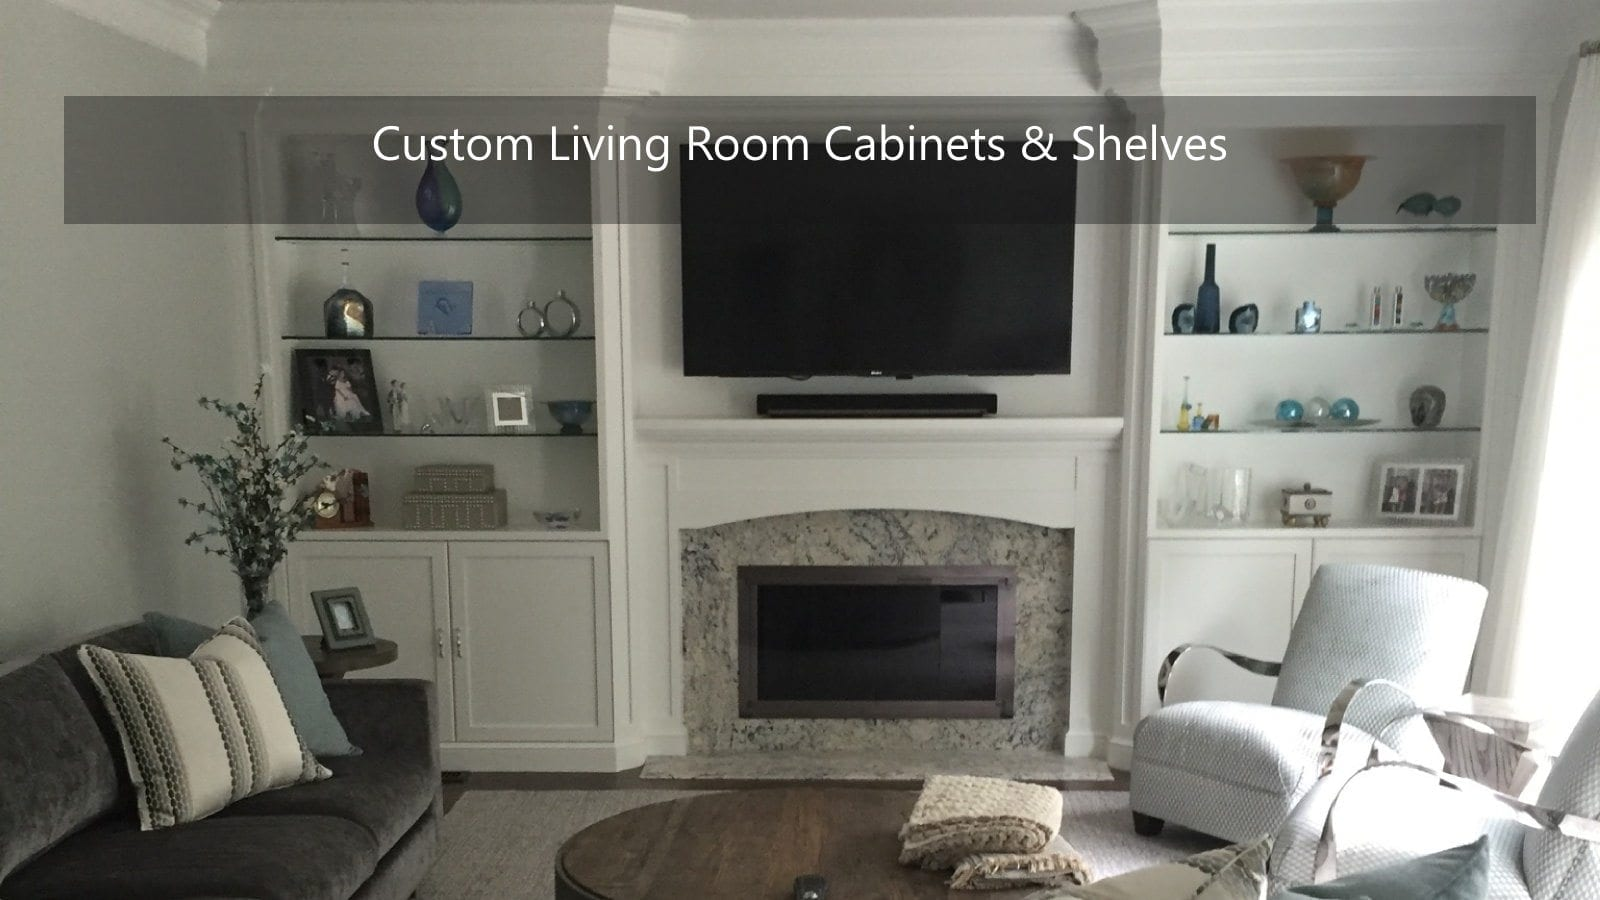 Custom Living Room Cabinets. What Makes A Cabinet Renowned  Furniture Grade Custom Designed Cabinets for Every Room